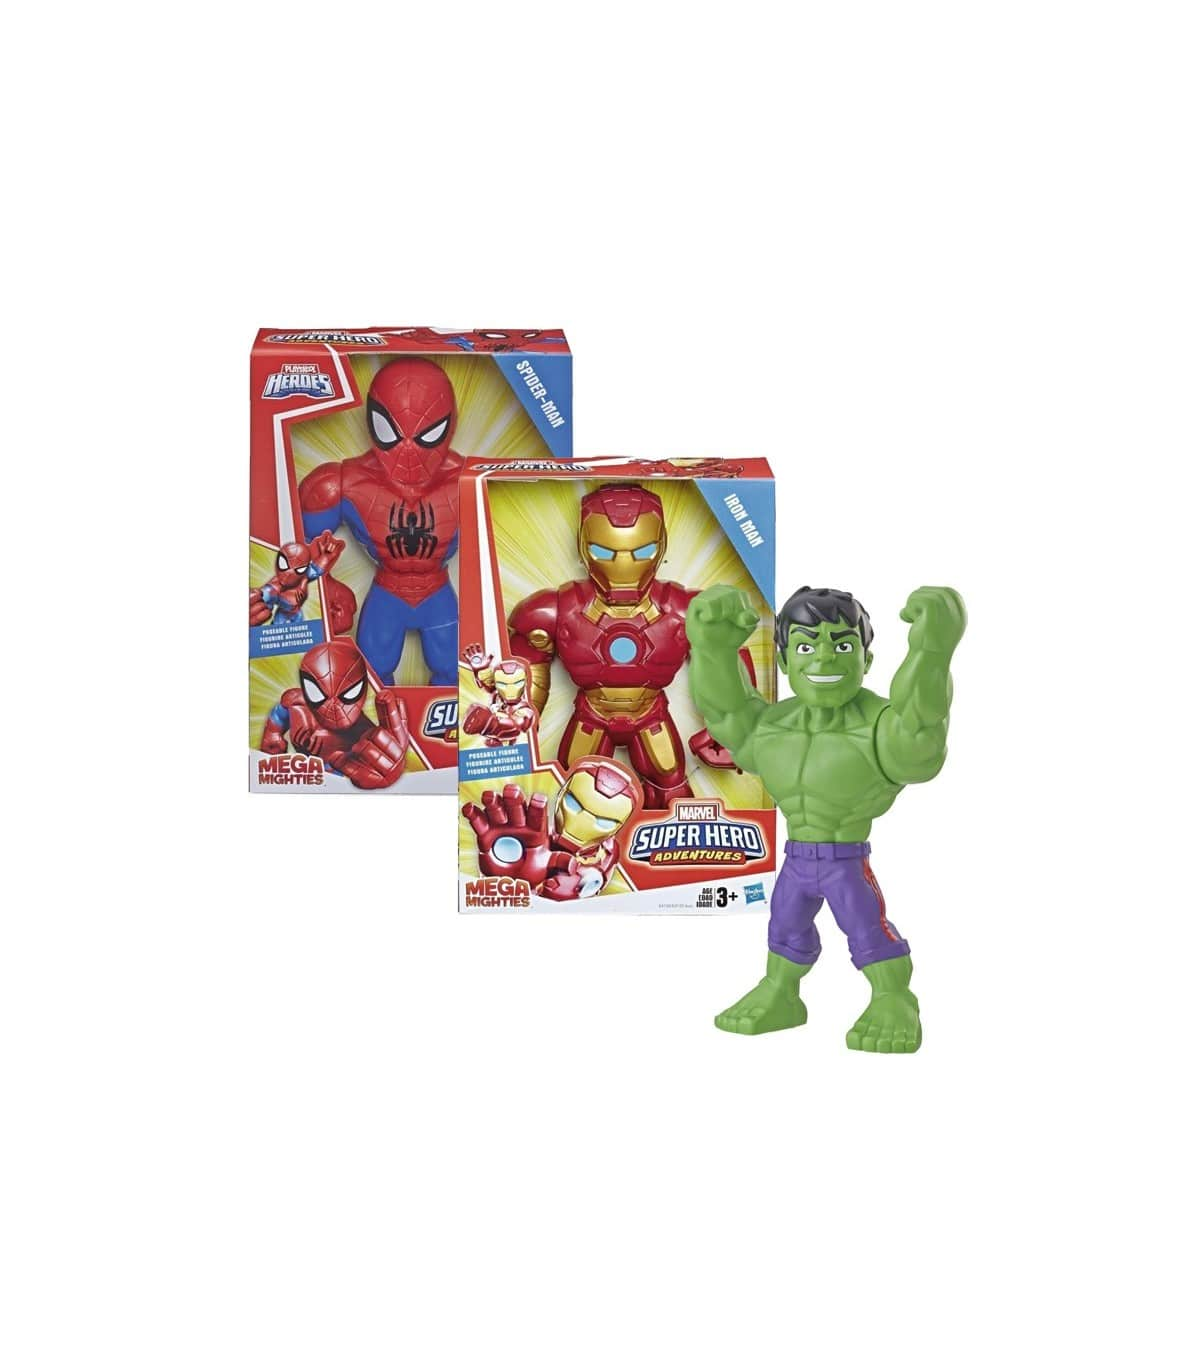 Figura Mega Mighties Super Heroe E4132 Avengers Hasbro